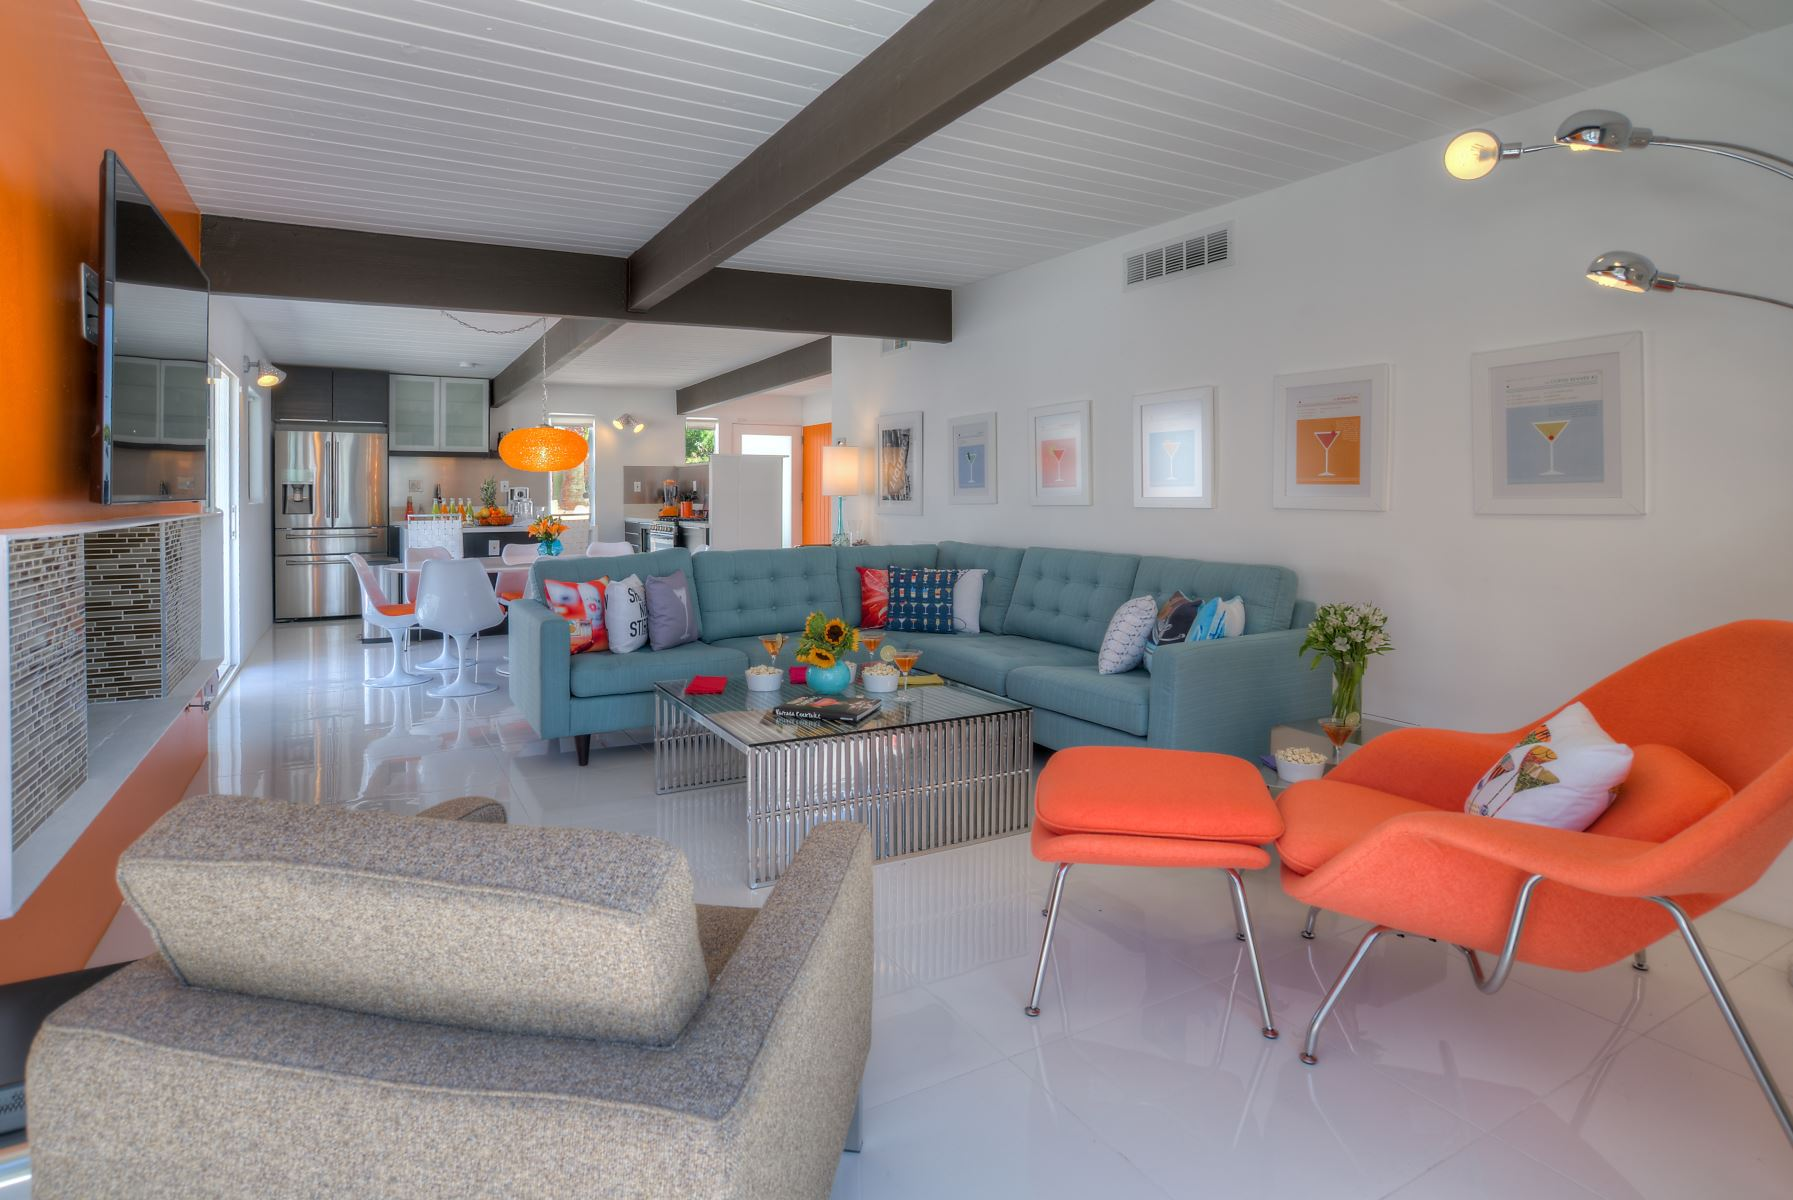 PS MARTINI - Design Services Provided by RELAX Palm Springs for this Mid-Century Vacation Rental in the Racquet Club Neighborhood of Palm Springs